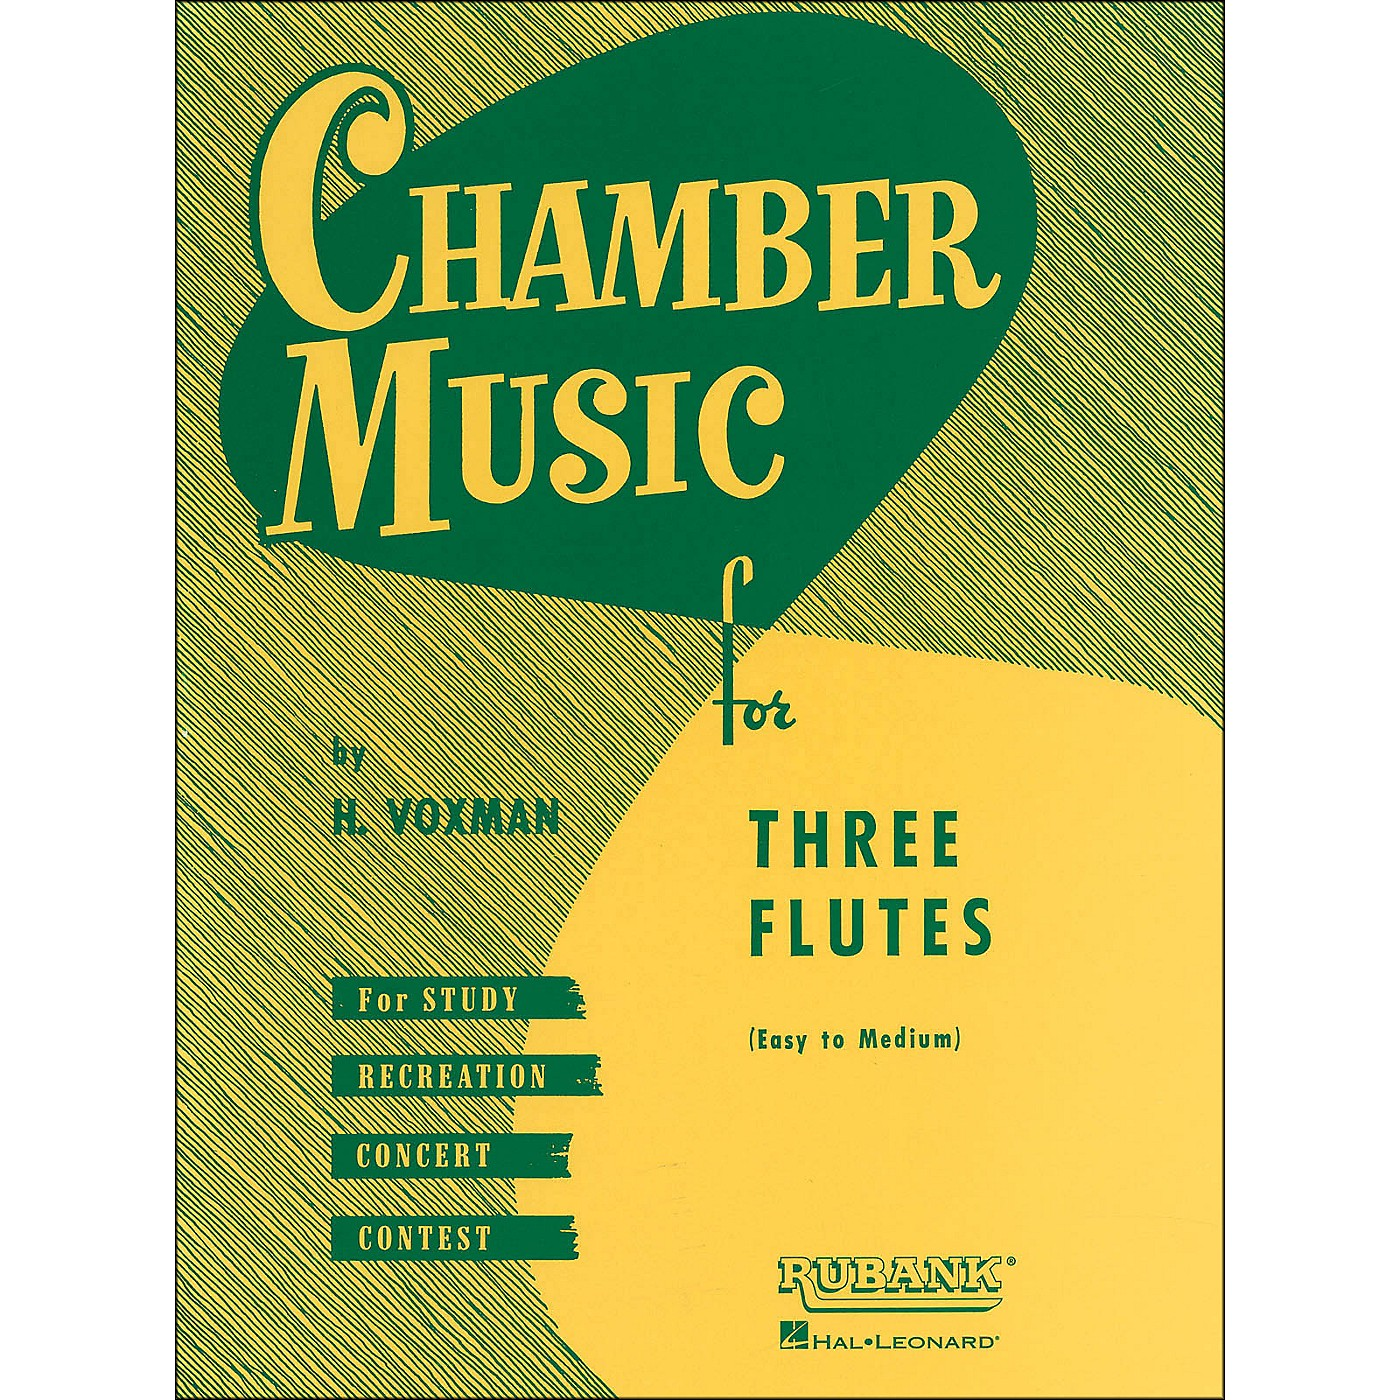 Hal Leonard Chamber Music Series for Three Flutes - Easy To Medium Level In Score form thumbnail